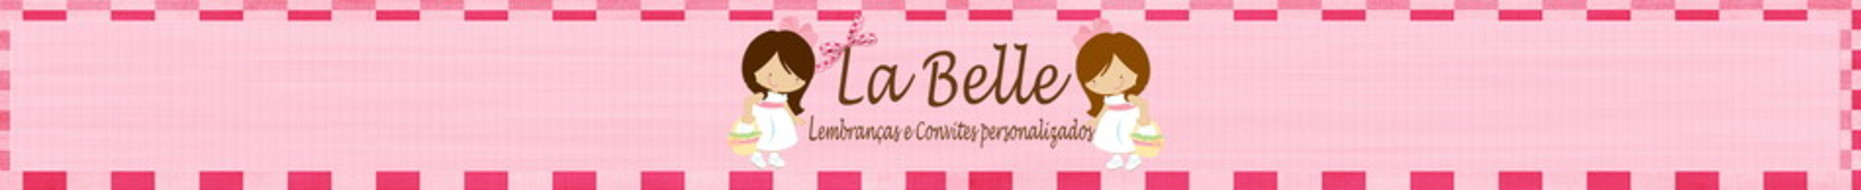 LA BELLE - PRODUTOS PERSONALIZADOS